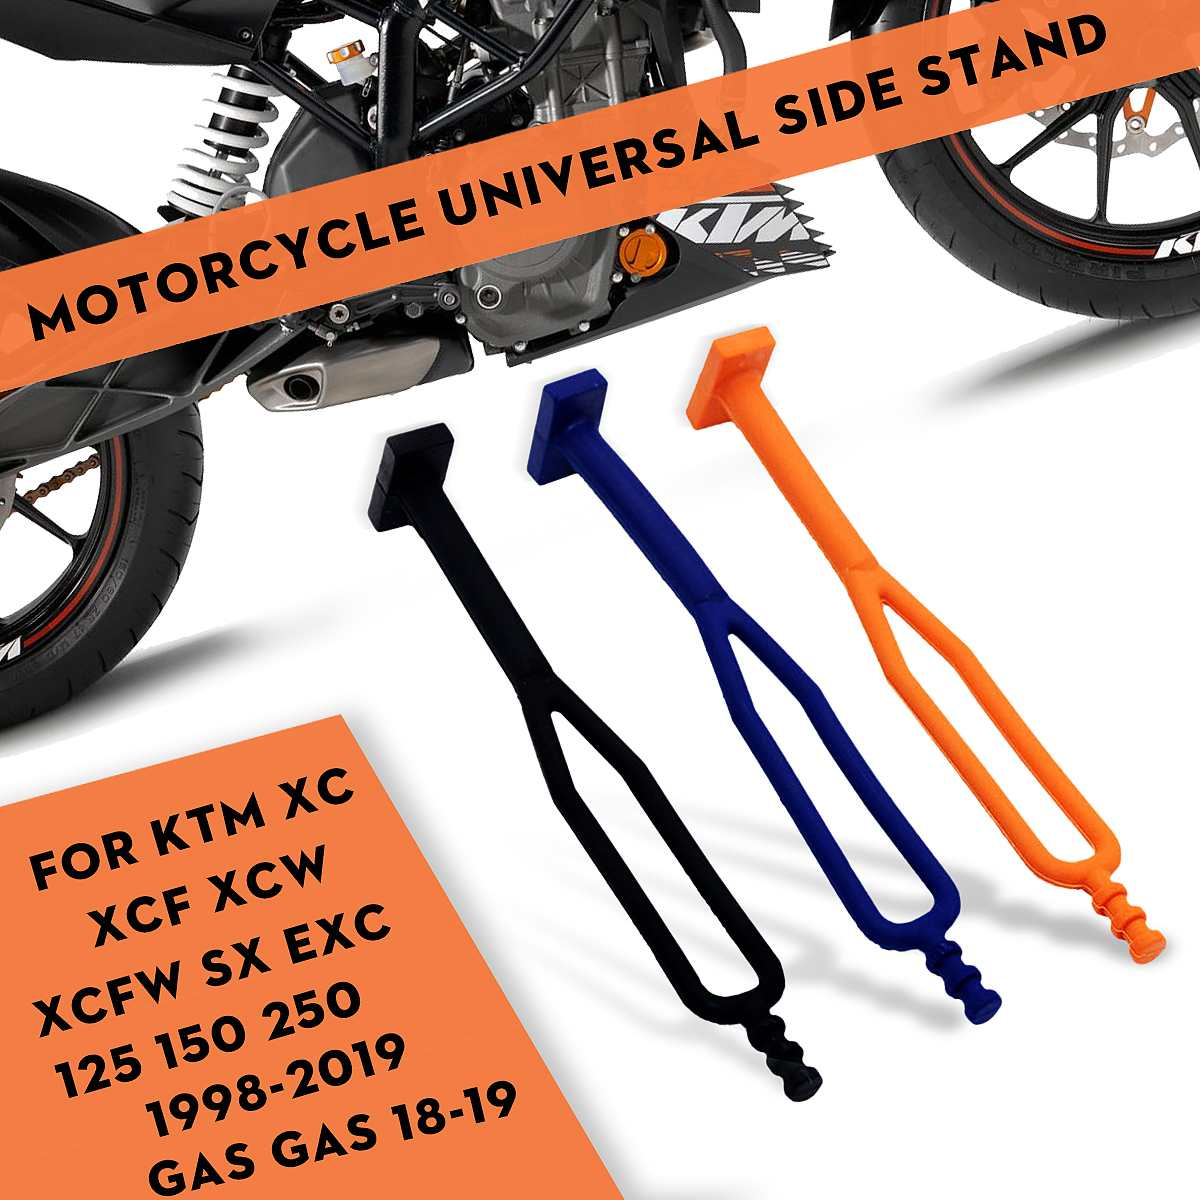 Motorcycle Parking Rack Side KickStand Kick Stand Rubber Strap For KTM XC XCF XCW XCFW SX EXC 125 150 250 350 450 530 For GAS